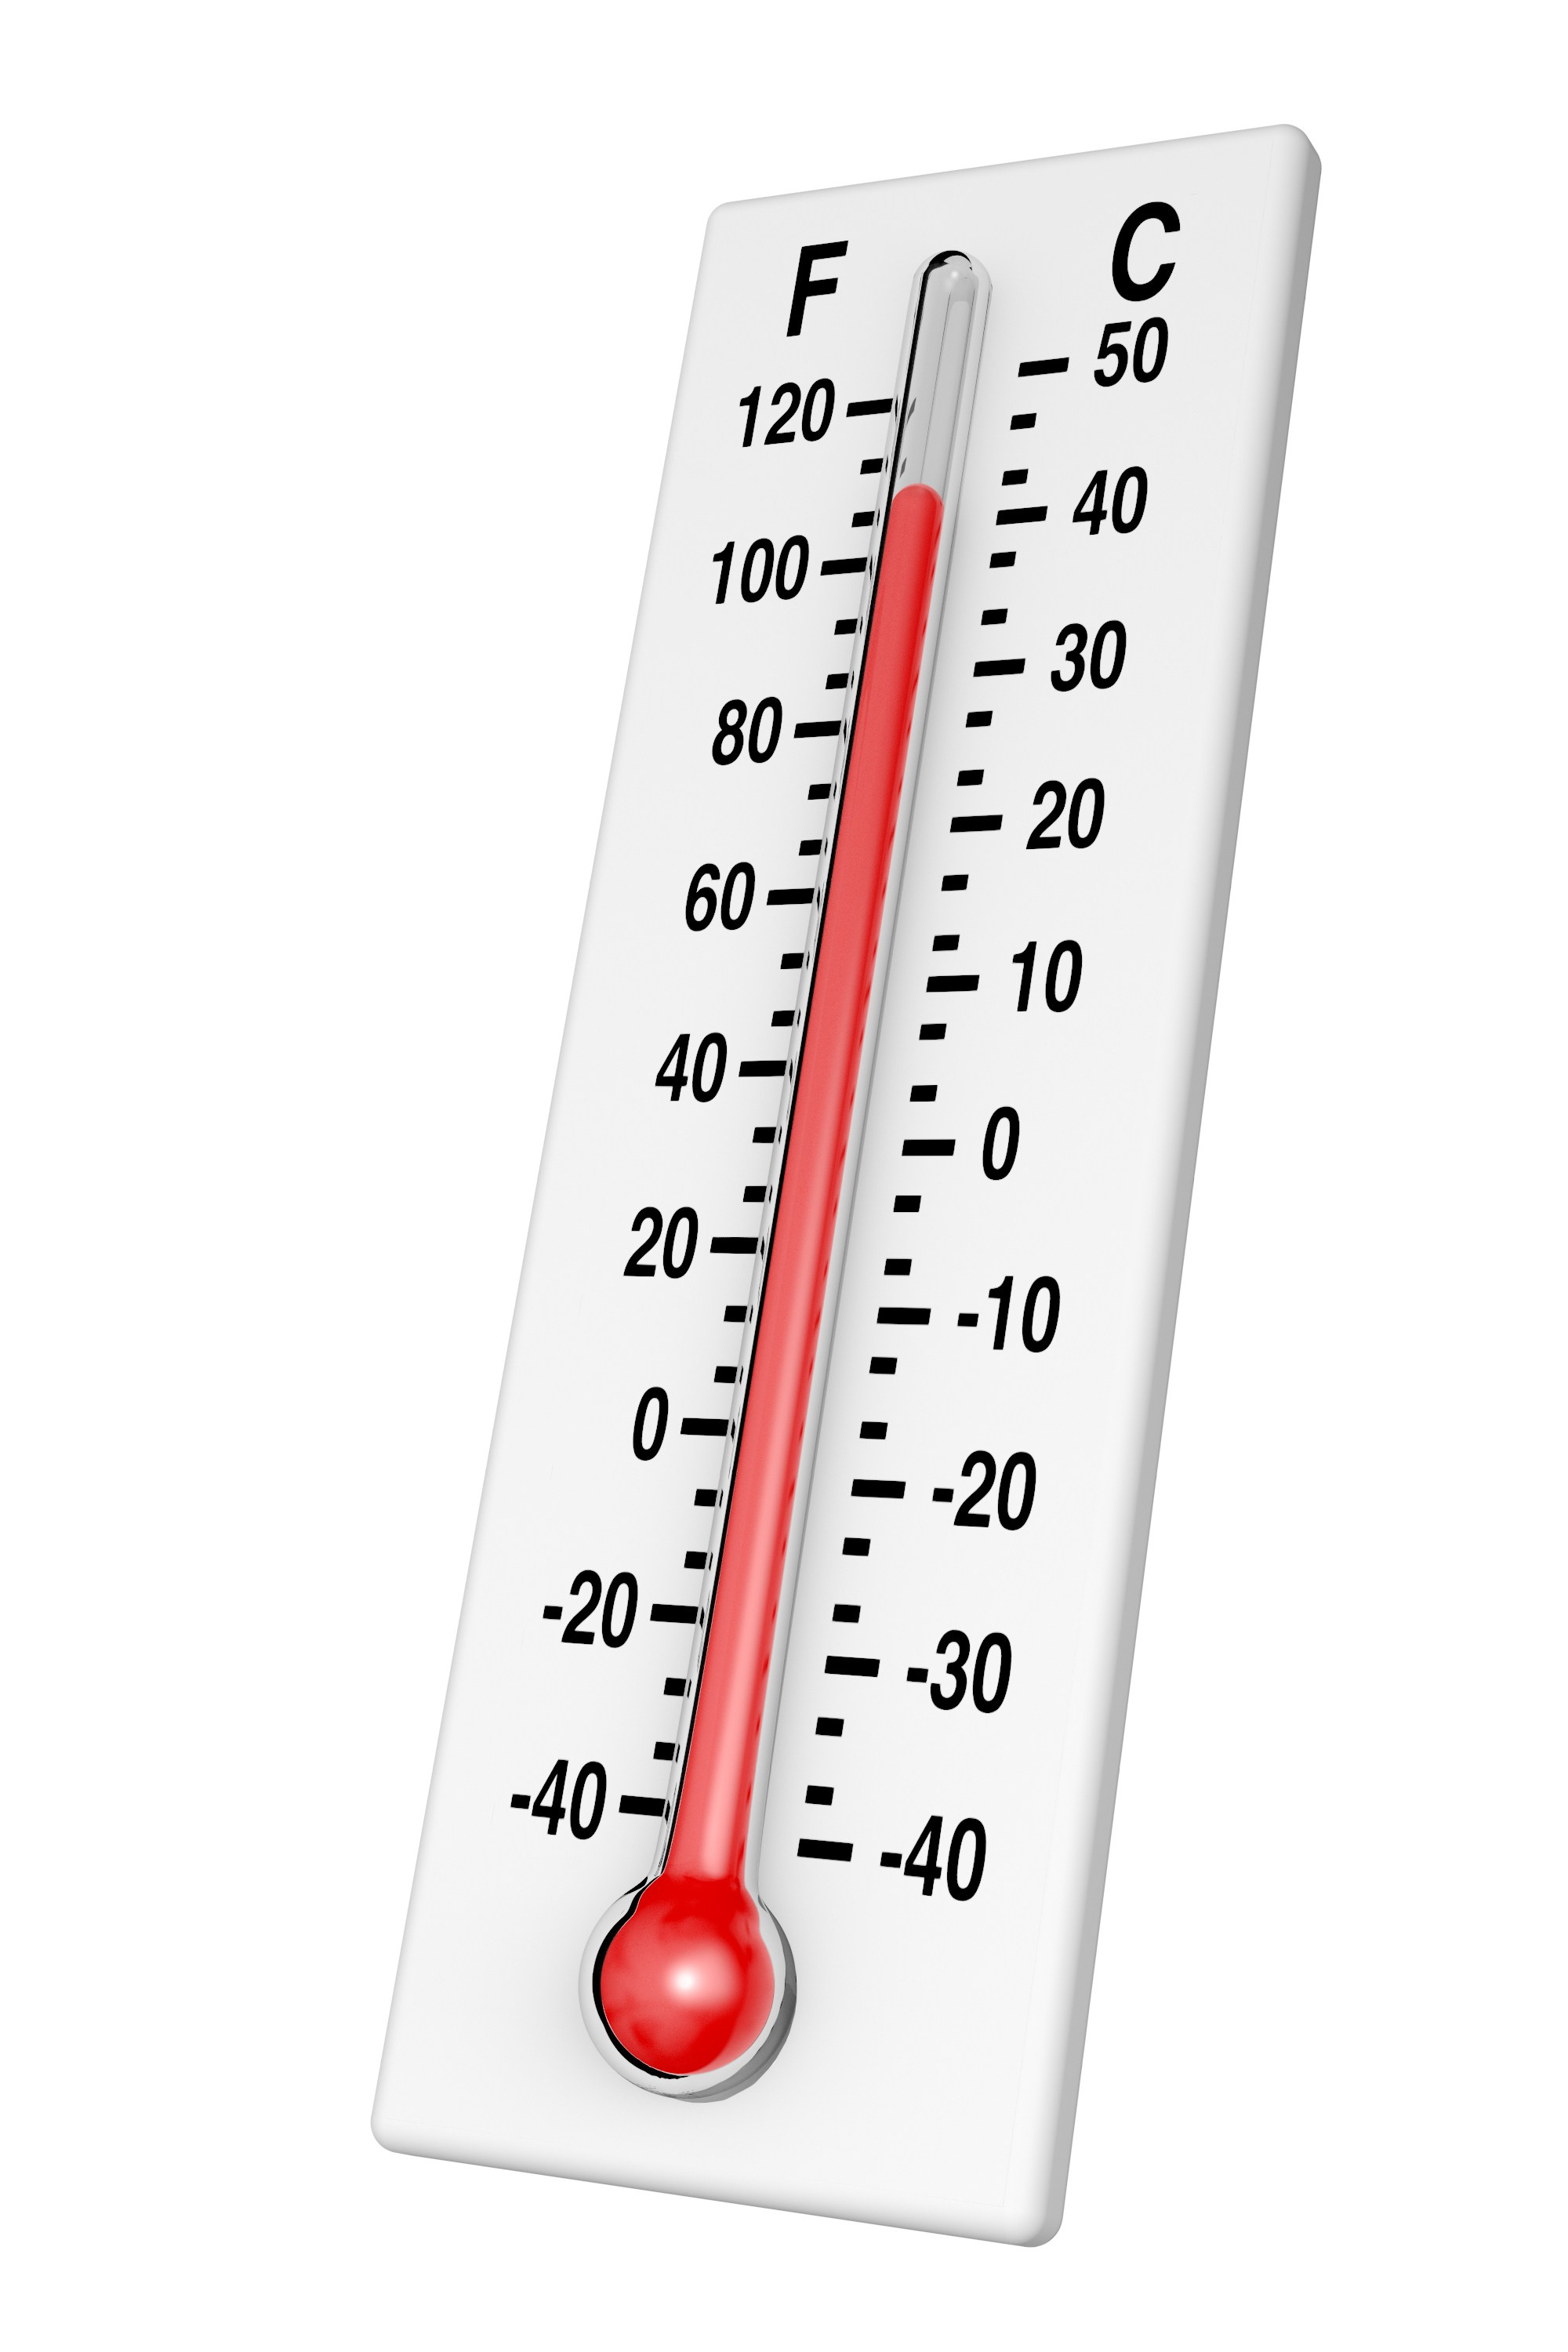 High quality fever thermometer clip art photos